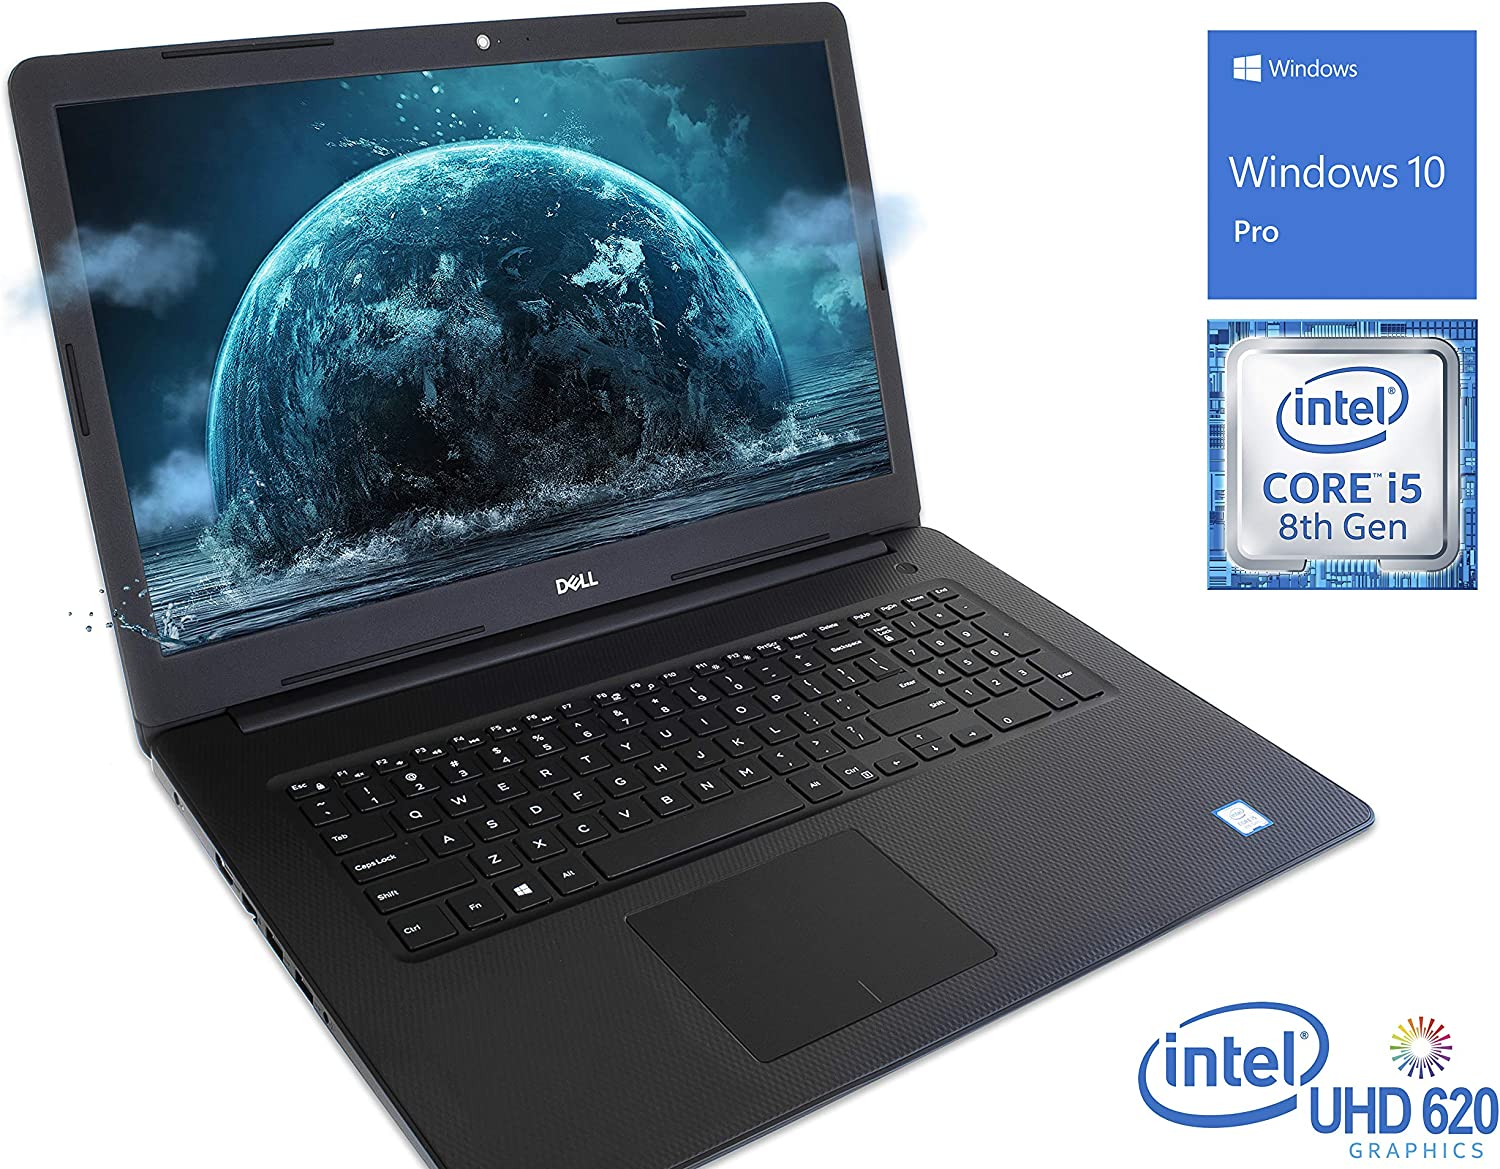 "Dell Inspiron 3583 (i3583-5763BLK) Laptop, 15.6"" HD Touch Display, Intel Core i5-8265U Upto 3.90GHz, 8GB RAM, 256GB NVMe SSD, HDMI, Card Reader, Wi-Fi, Bluetooth, Windows 10 Home S"